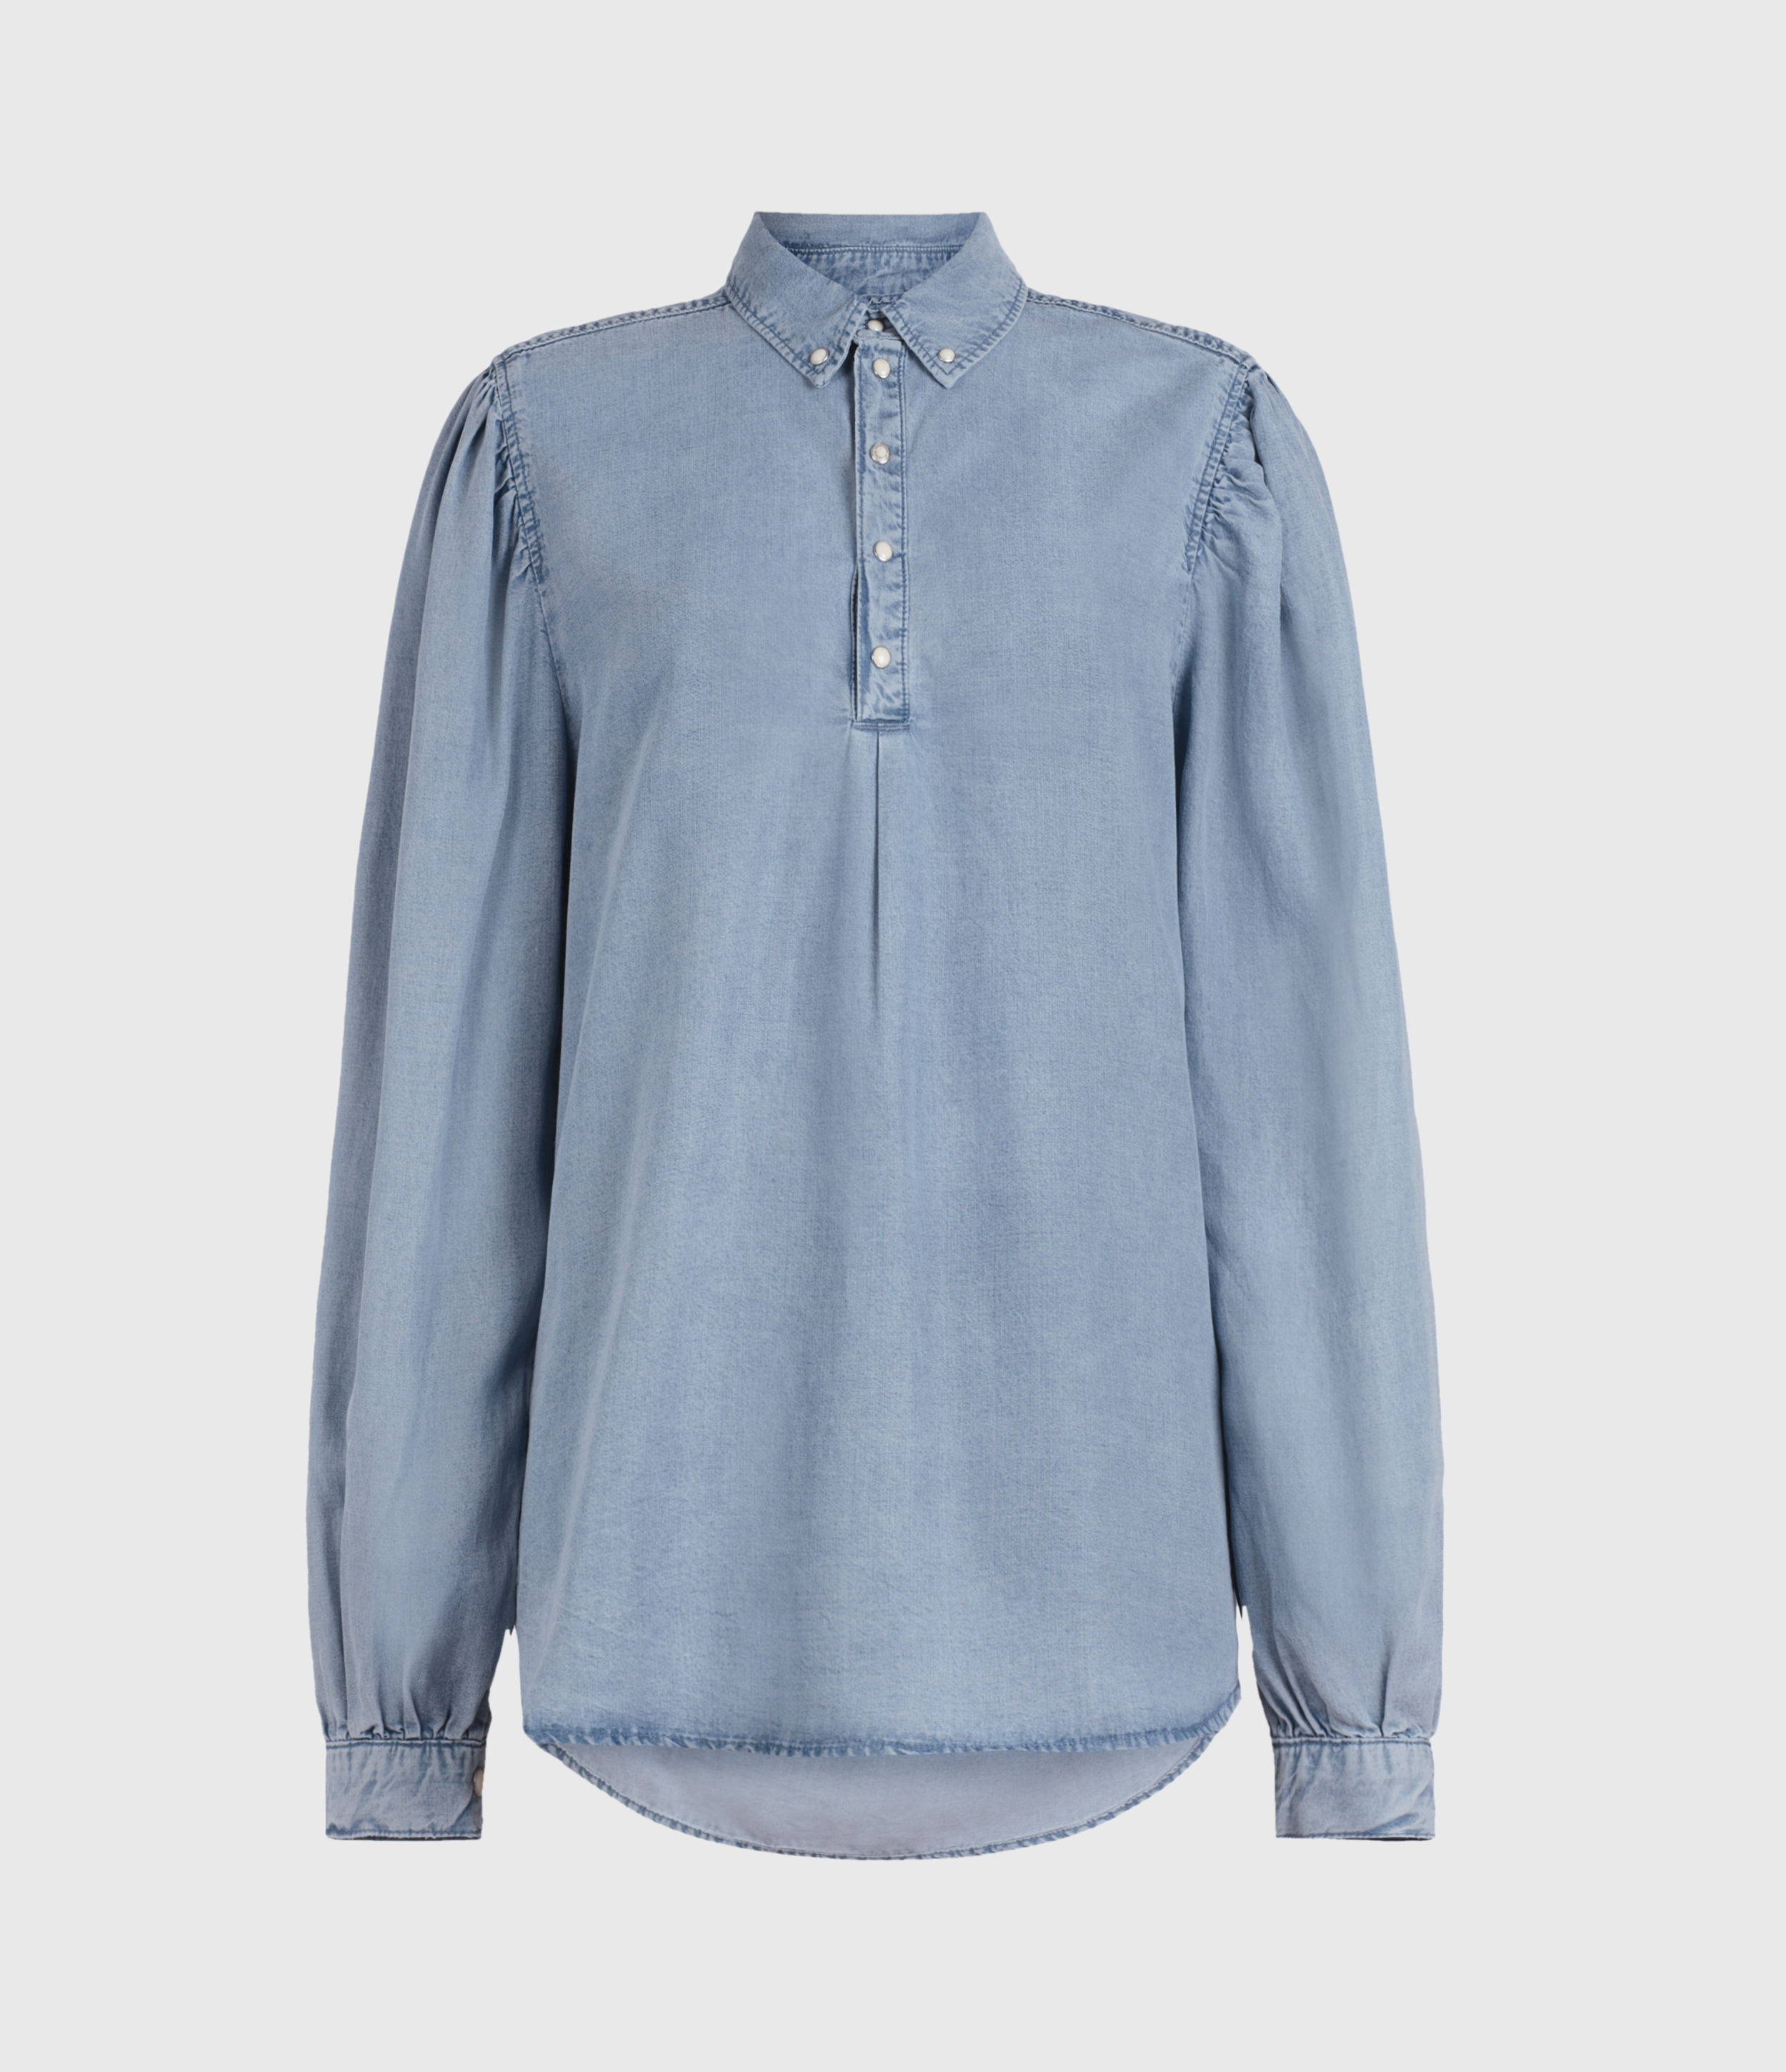 AllSaints Womens Ellen Tencel Shirt, Light Indigo, Size: 6